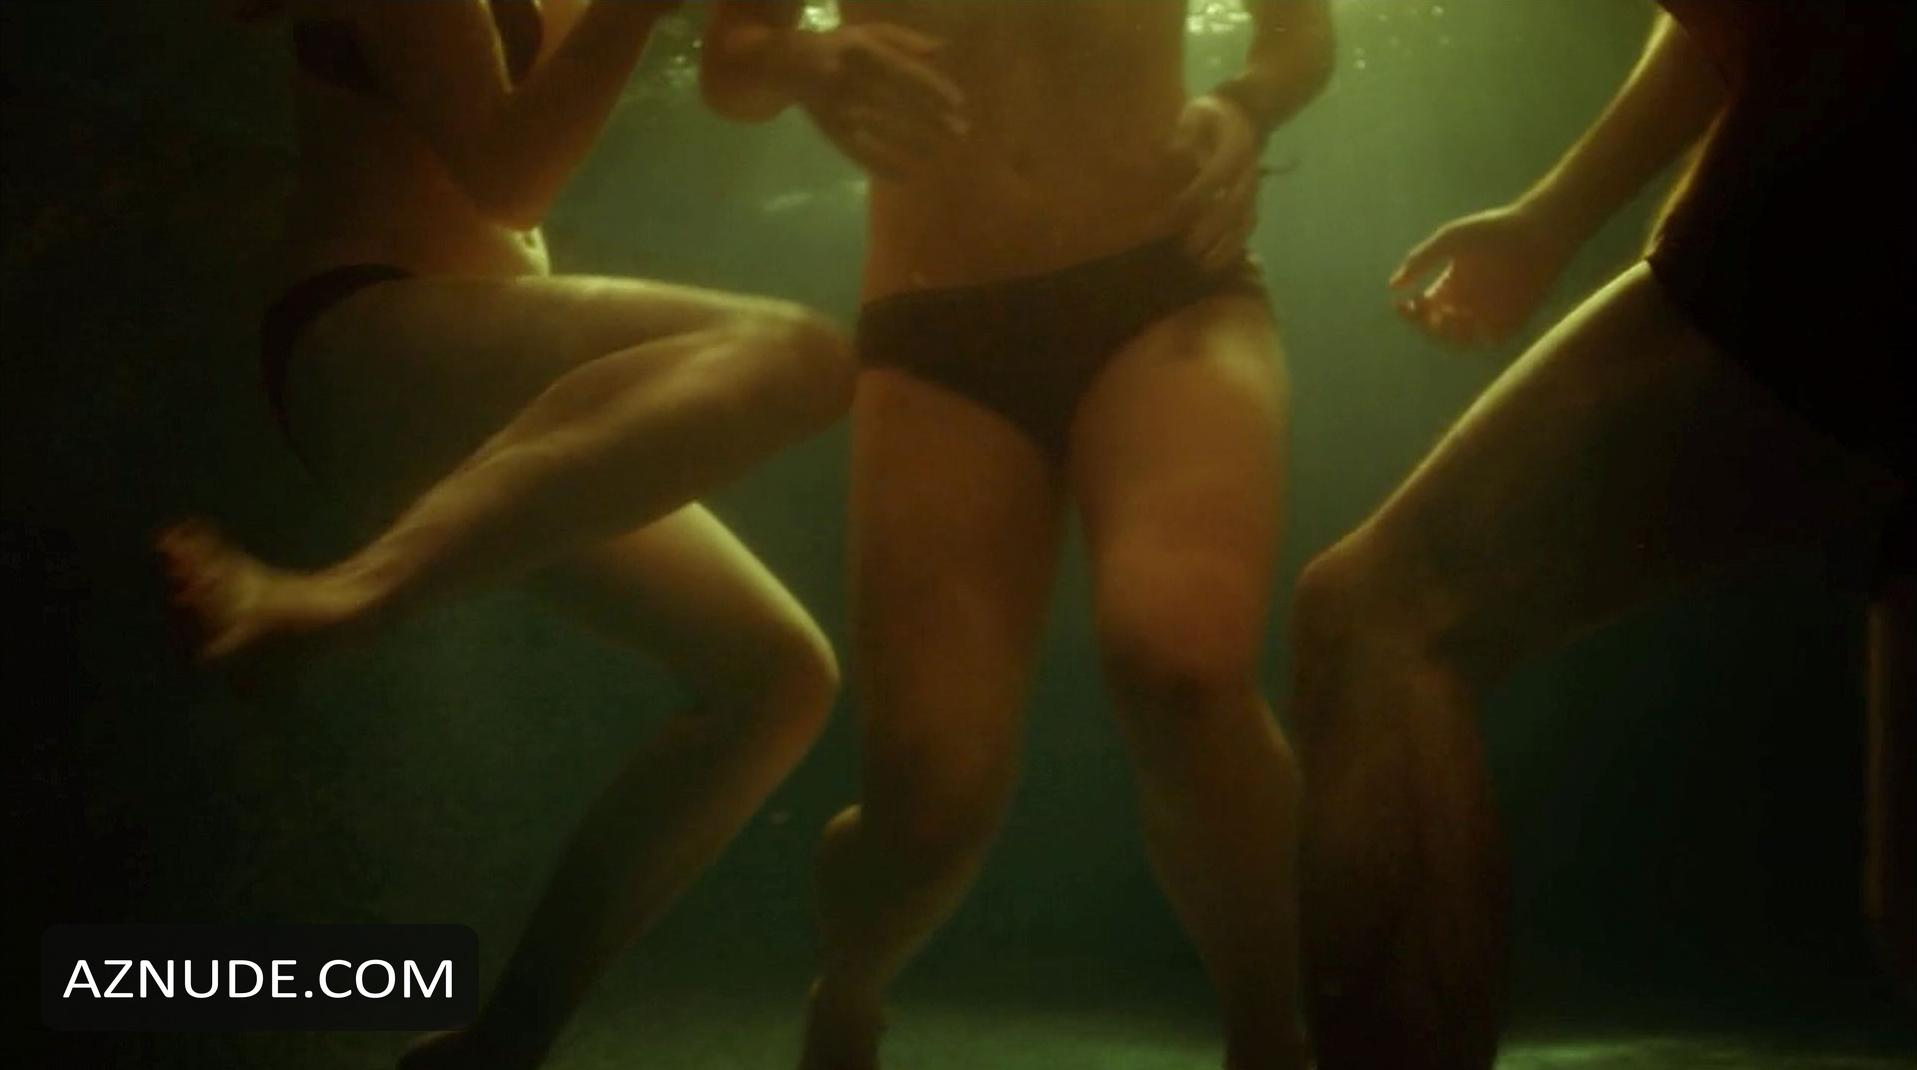 reese witherspoon hot sx scene gifs